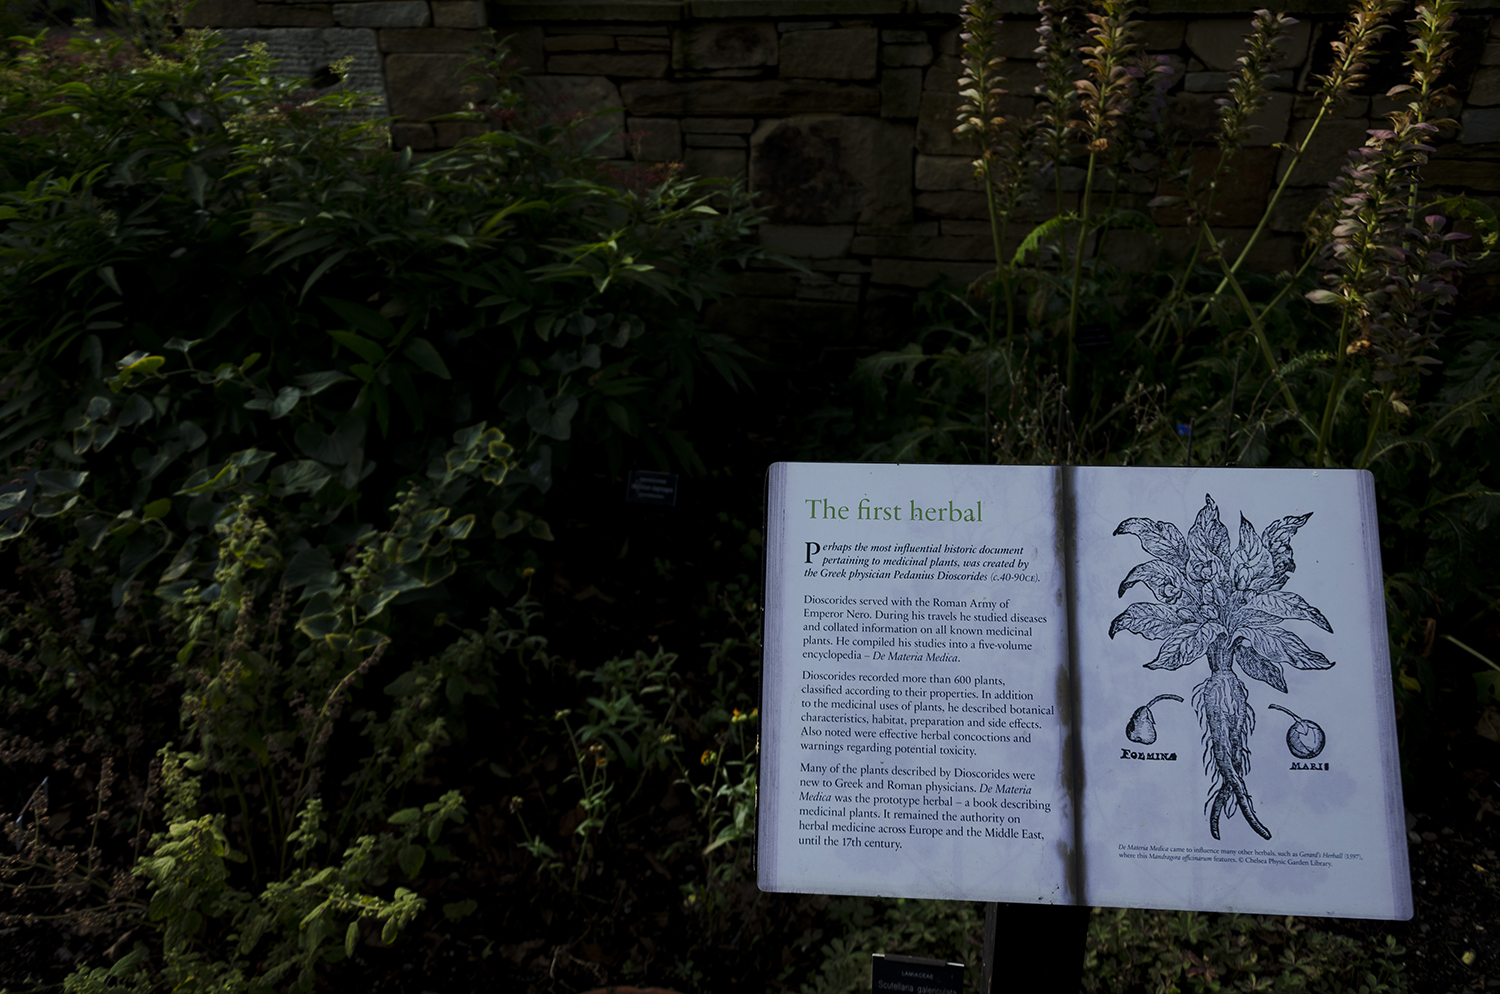 The Chelsea Physic Garden, a secret place in London